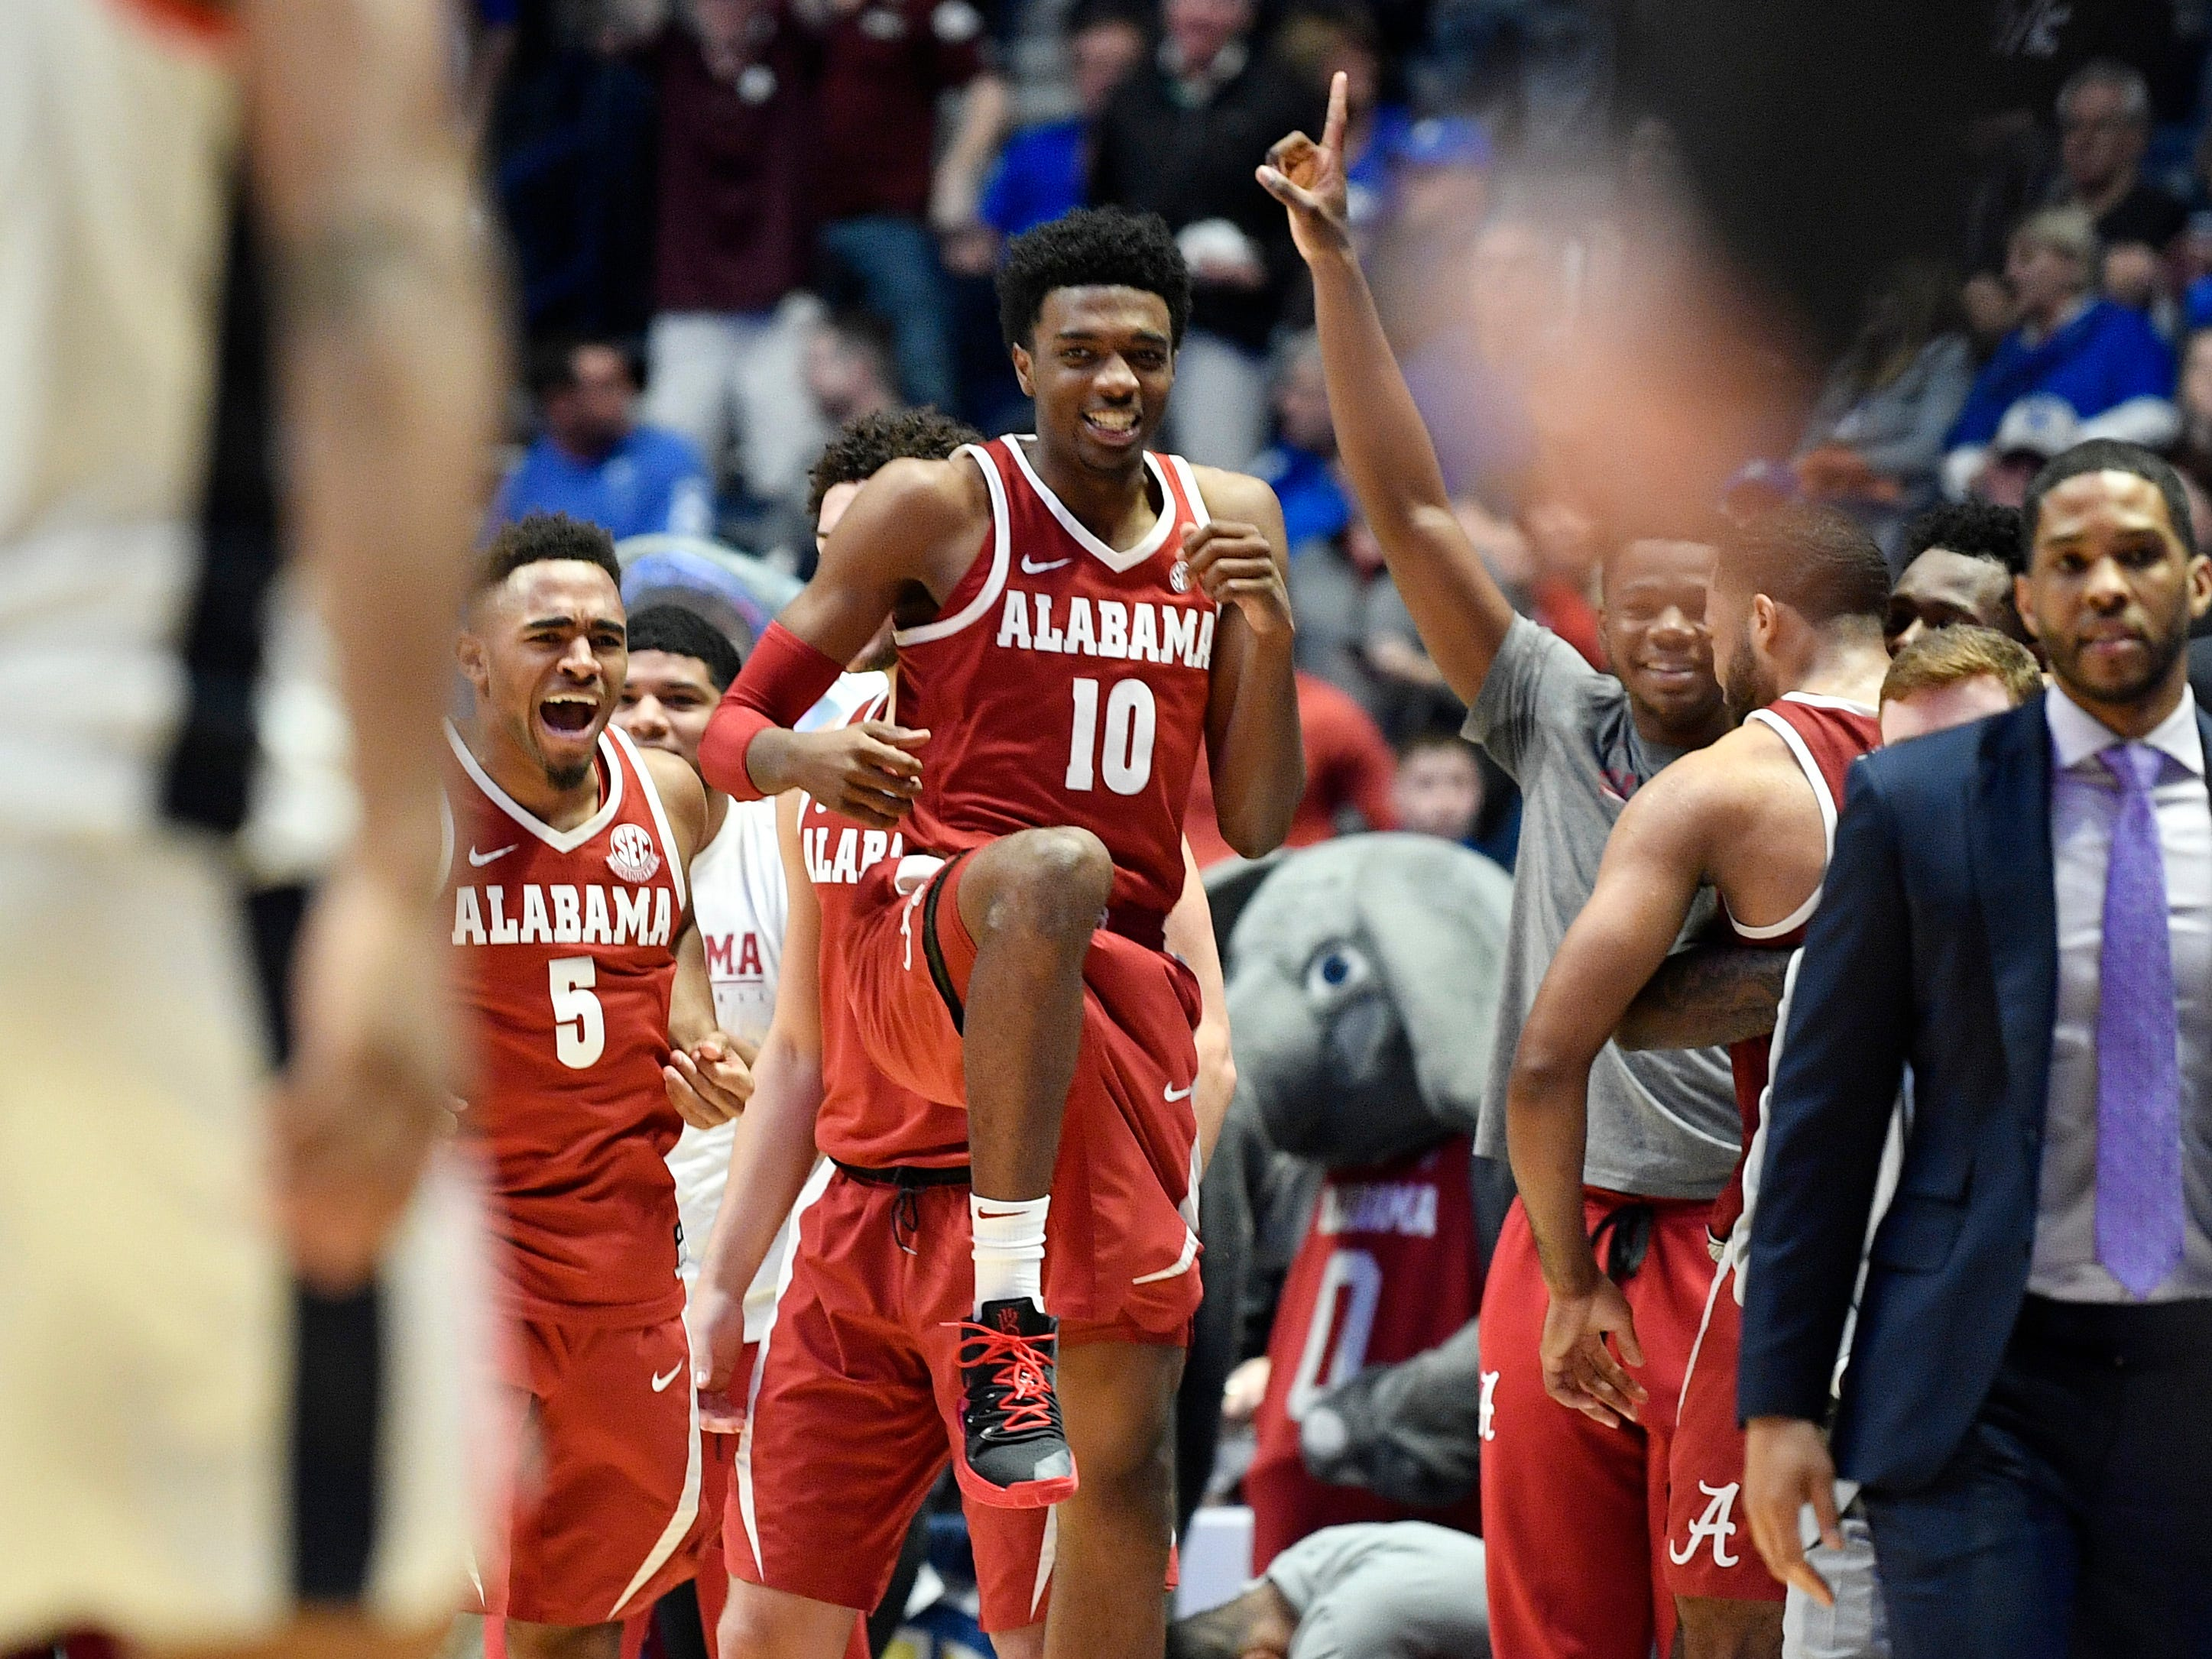 Alabama players celebrate their win over Ole Miss in during the SEC Men's Basketball Tournament at Bridgestone Arena in Nashville, Tenn., Thursday, March 14, 2019.